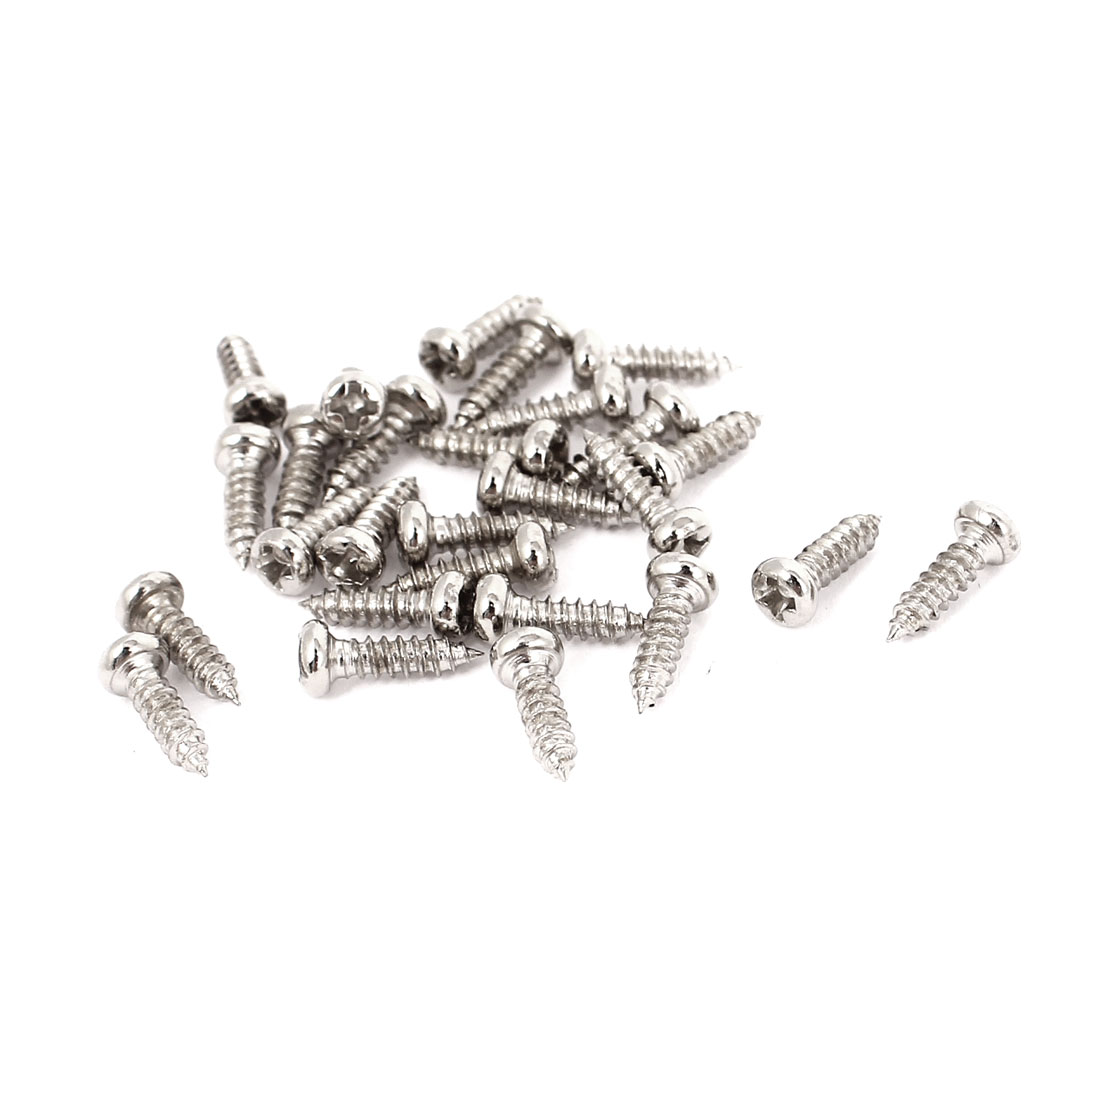 30 Pcs 0.8mm Pitch Phillips Pan Head Self Tapping Drilling Screws Bolts M2x7mm